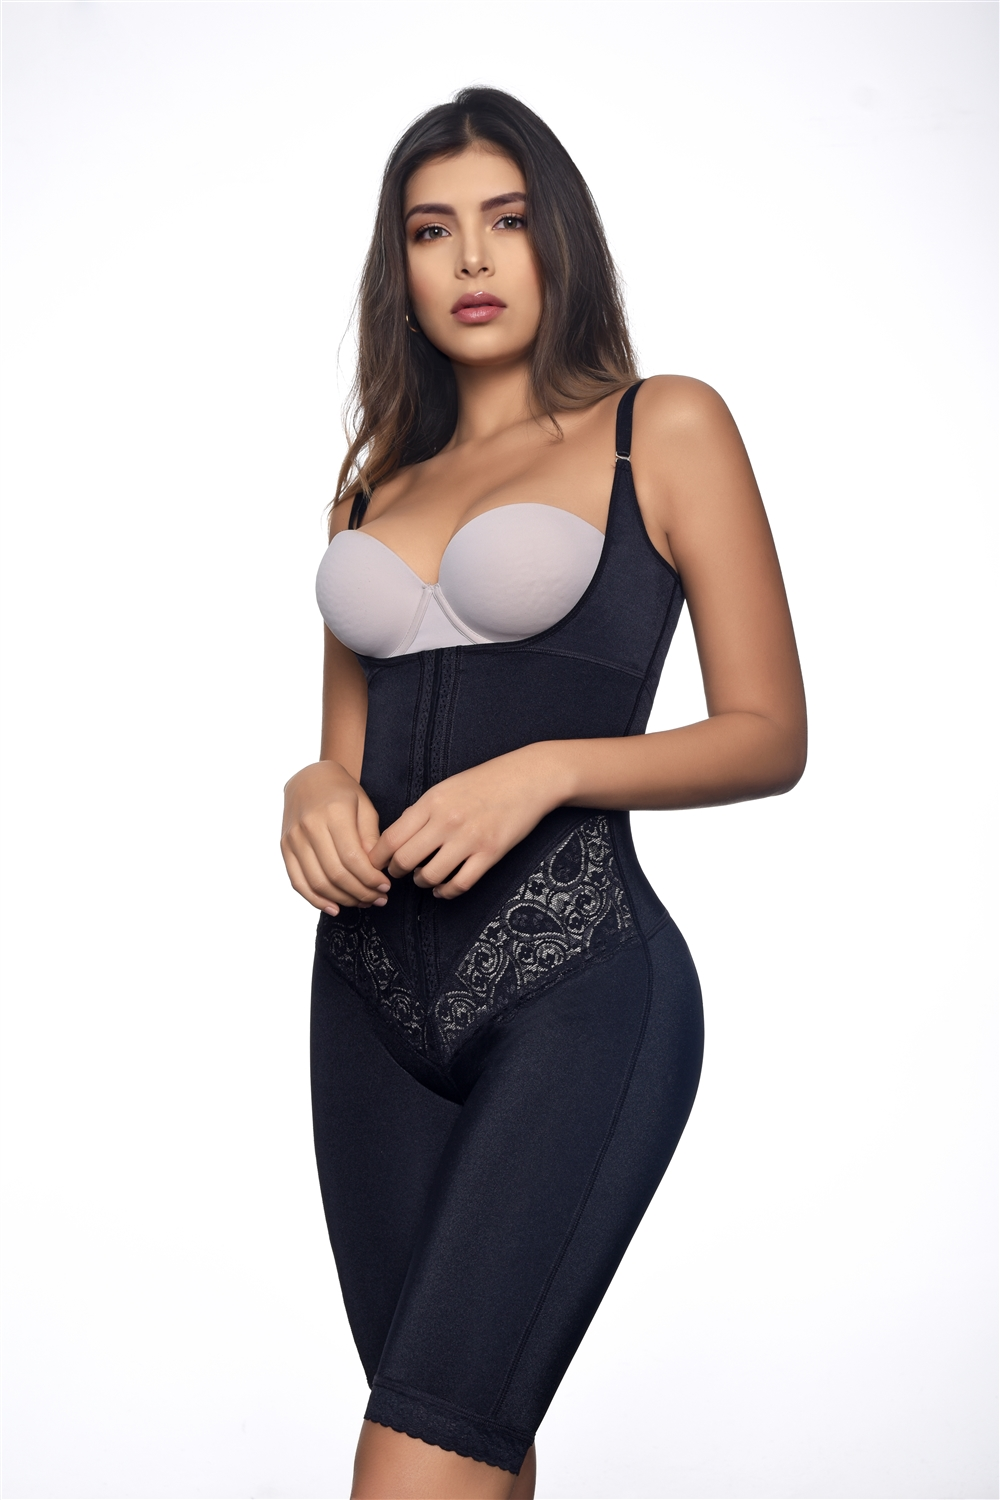 fc0a1dafae8 Vedette Braless Full Bodysuit Above the Knee 117